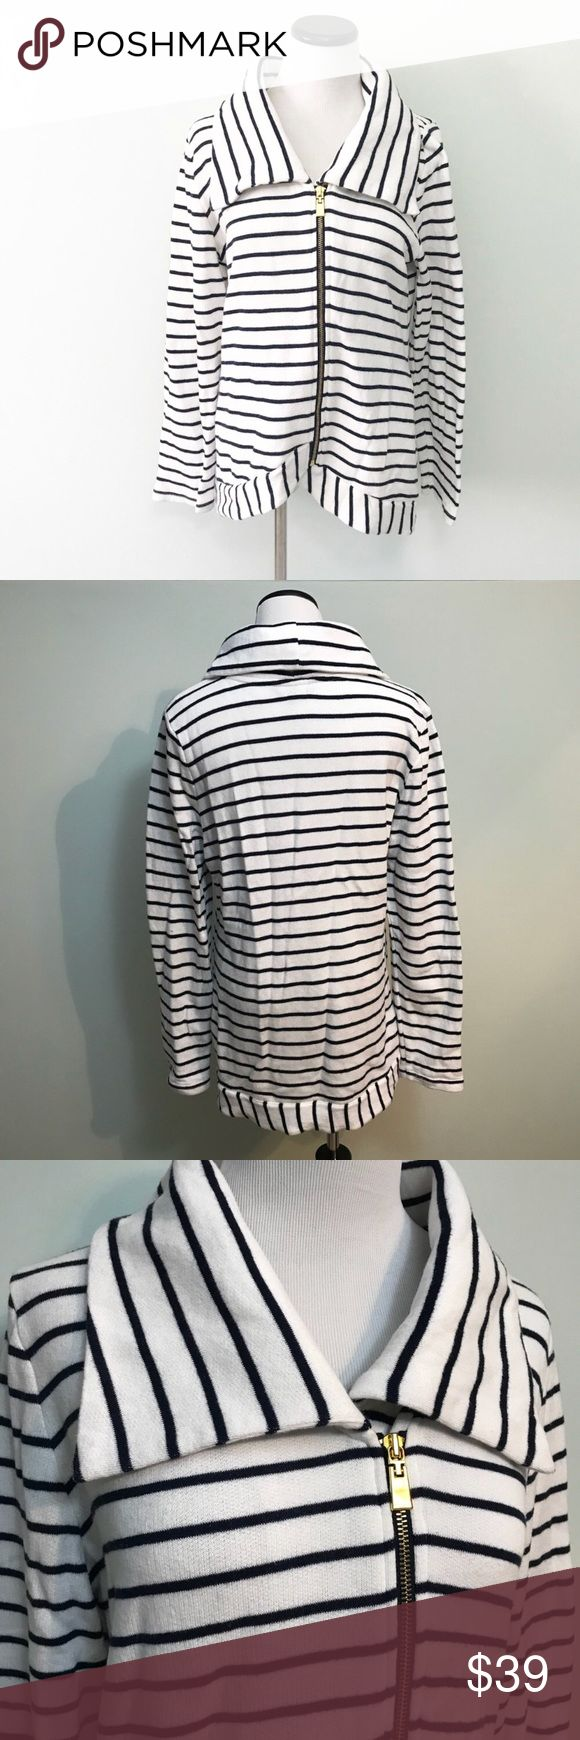 """TOMMY HILFIGER White Navy blue zip up Sweater Tommy Hilfiger Navy blue and white striped zip up Jacket sweatshirt. Sweatshirt material. Gold colored zipper. Slight hi low design. Length in front 26"""". Chest 21.5"""". Side pockets. Big shawl collar. Tommy Hilfiger Sweaters"""